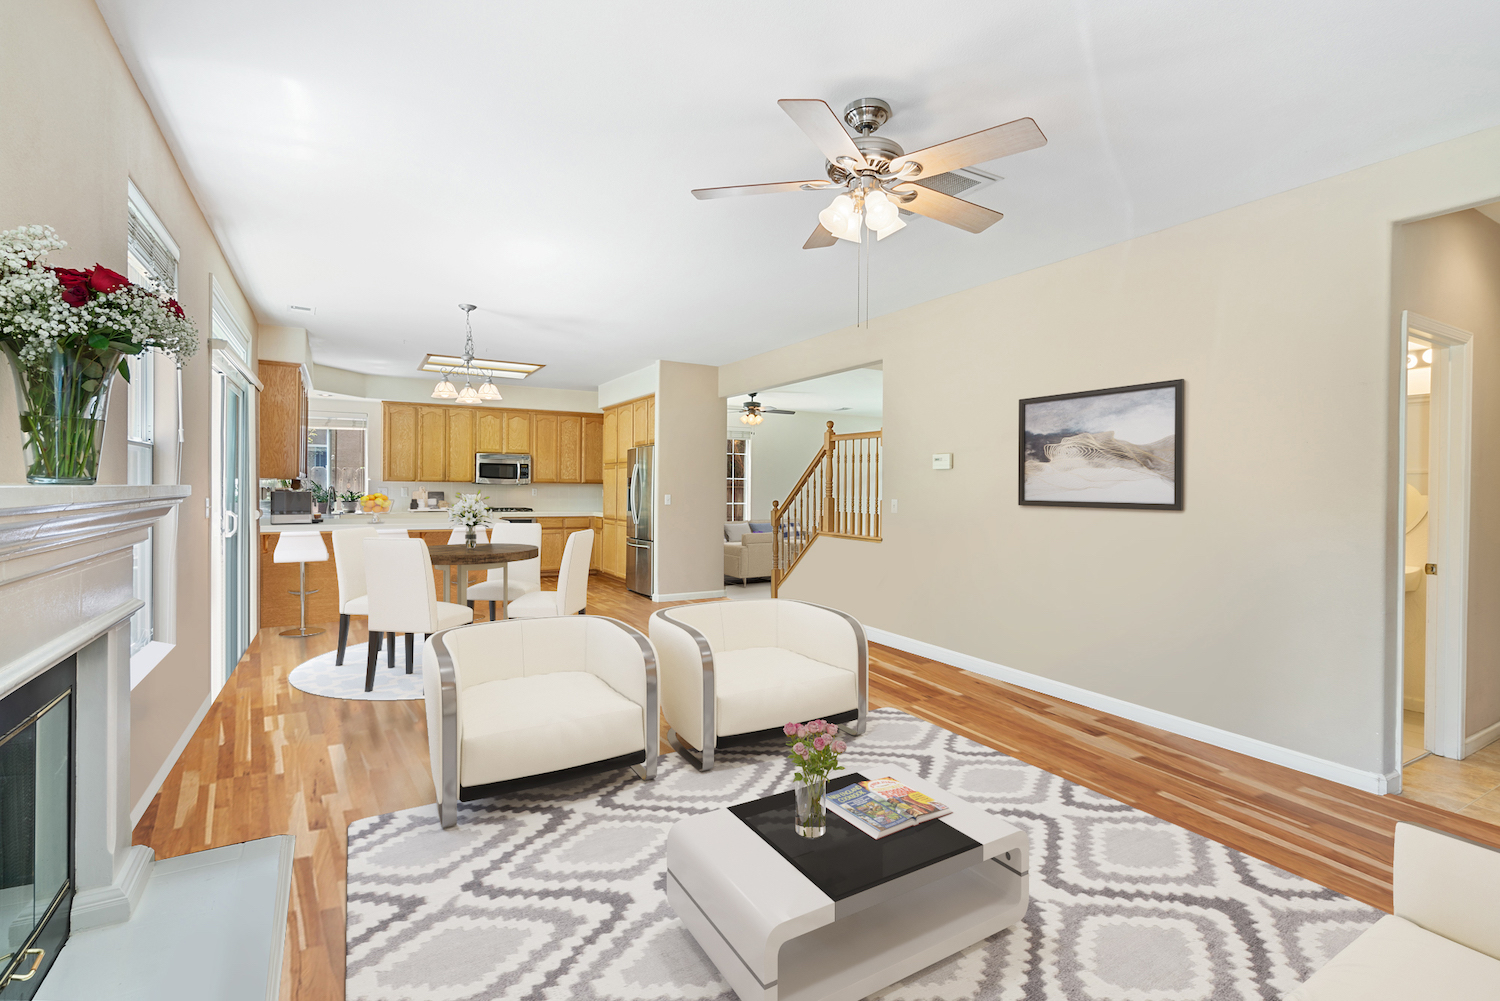 2241 glenview dr - living space furnished